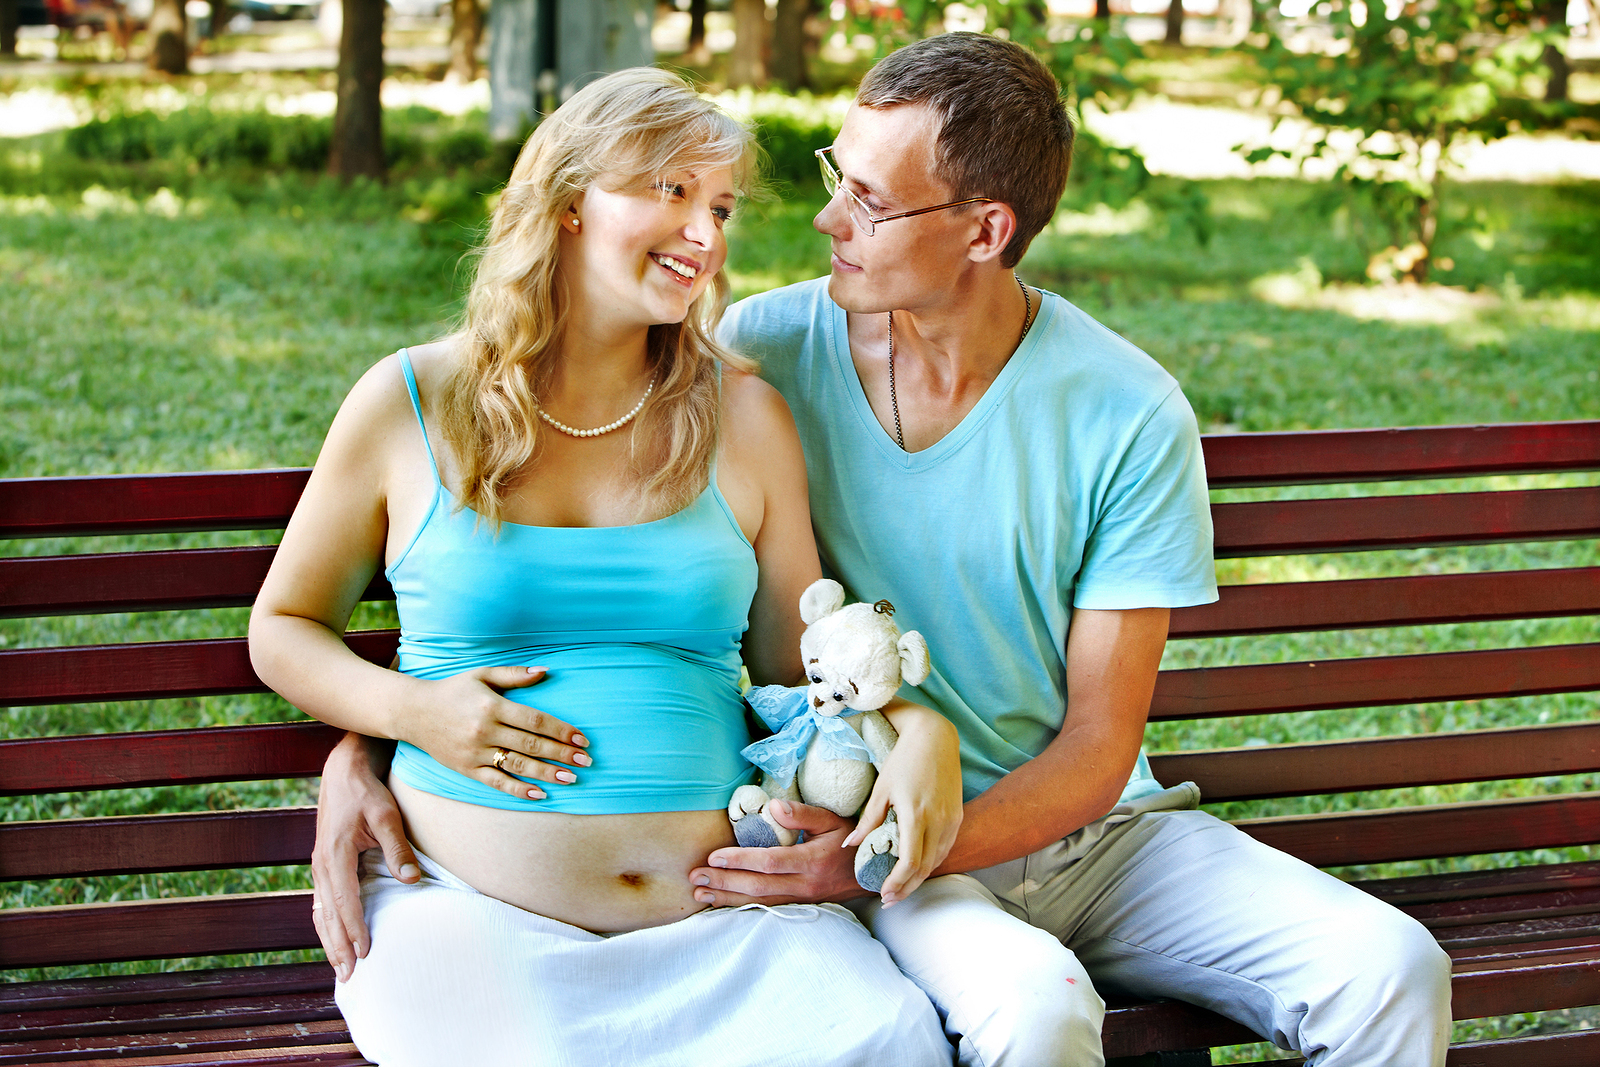 bigstock-Pregnant-woman-with-man-holdi-50269973.jpg